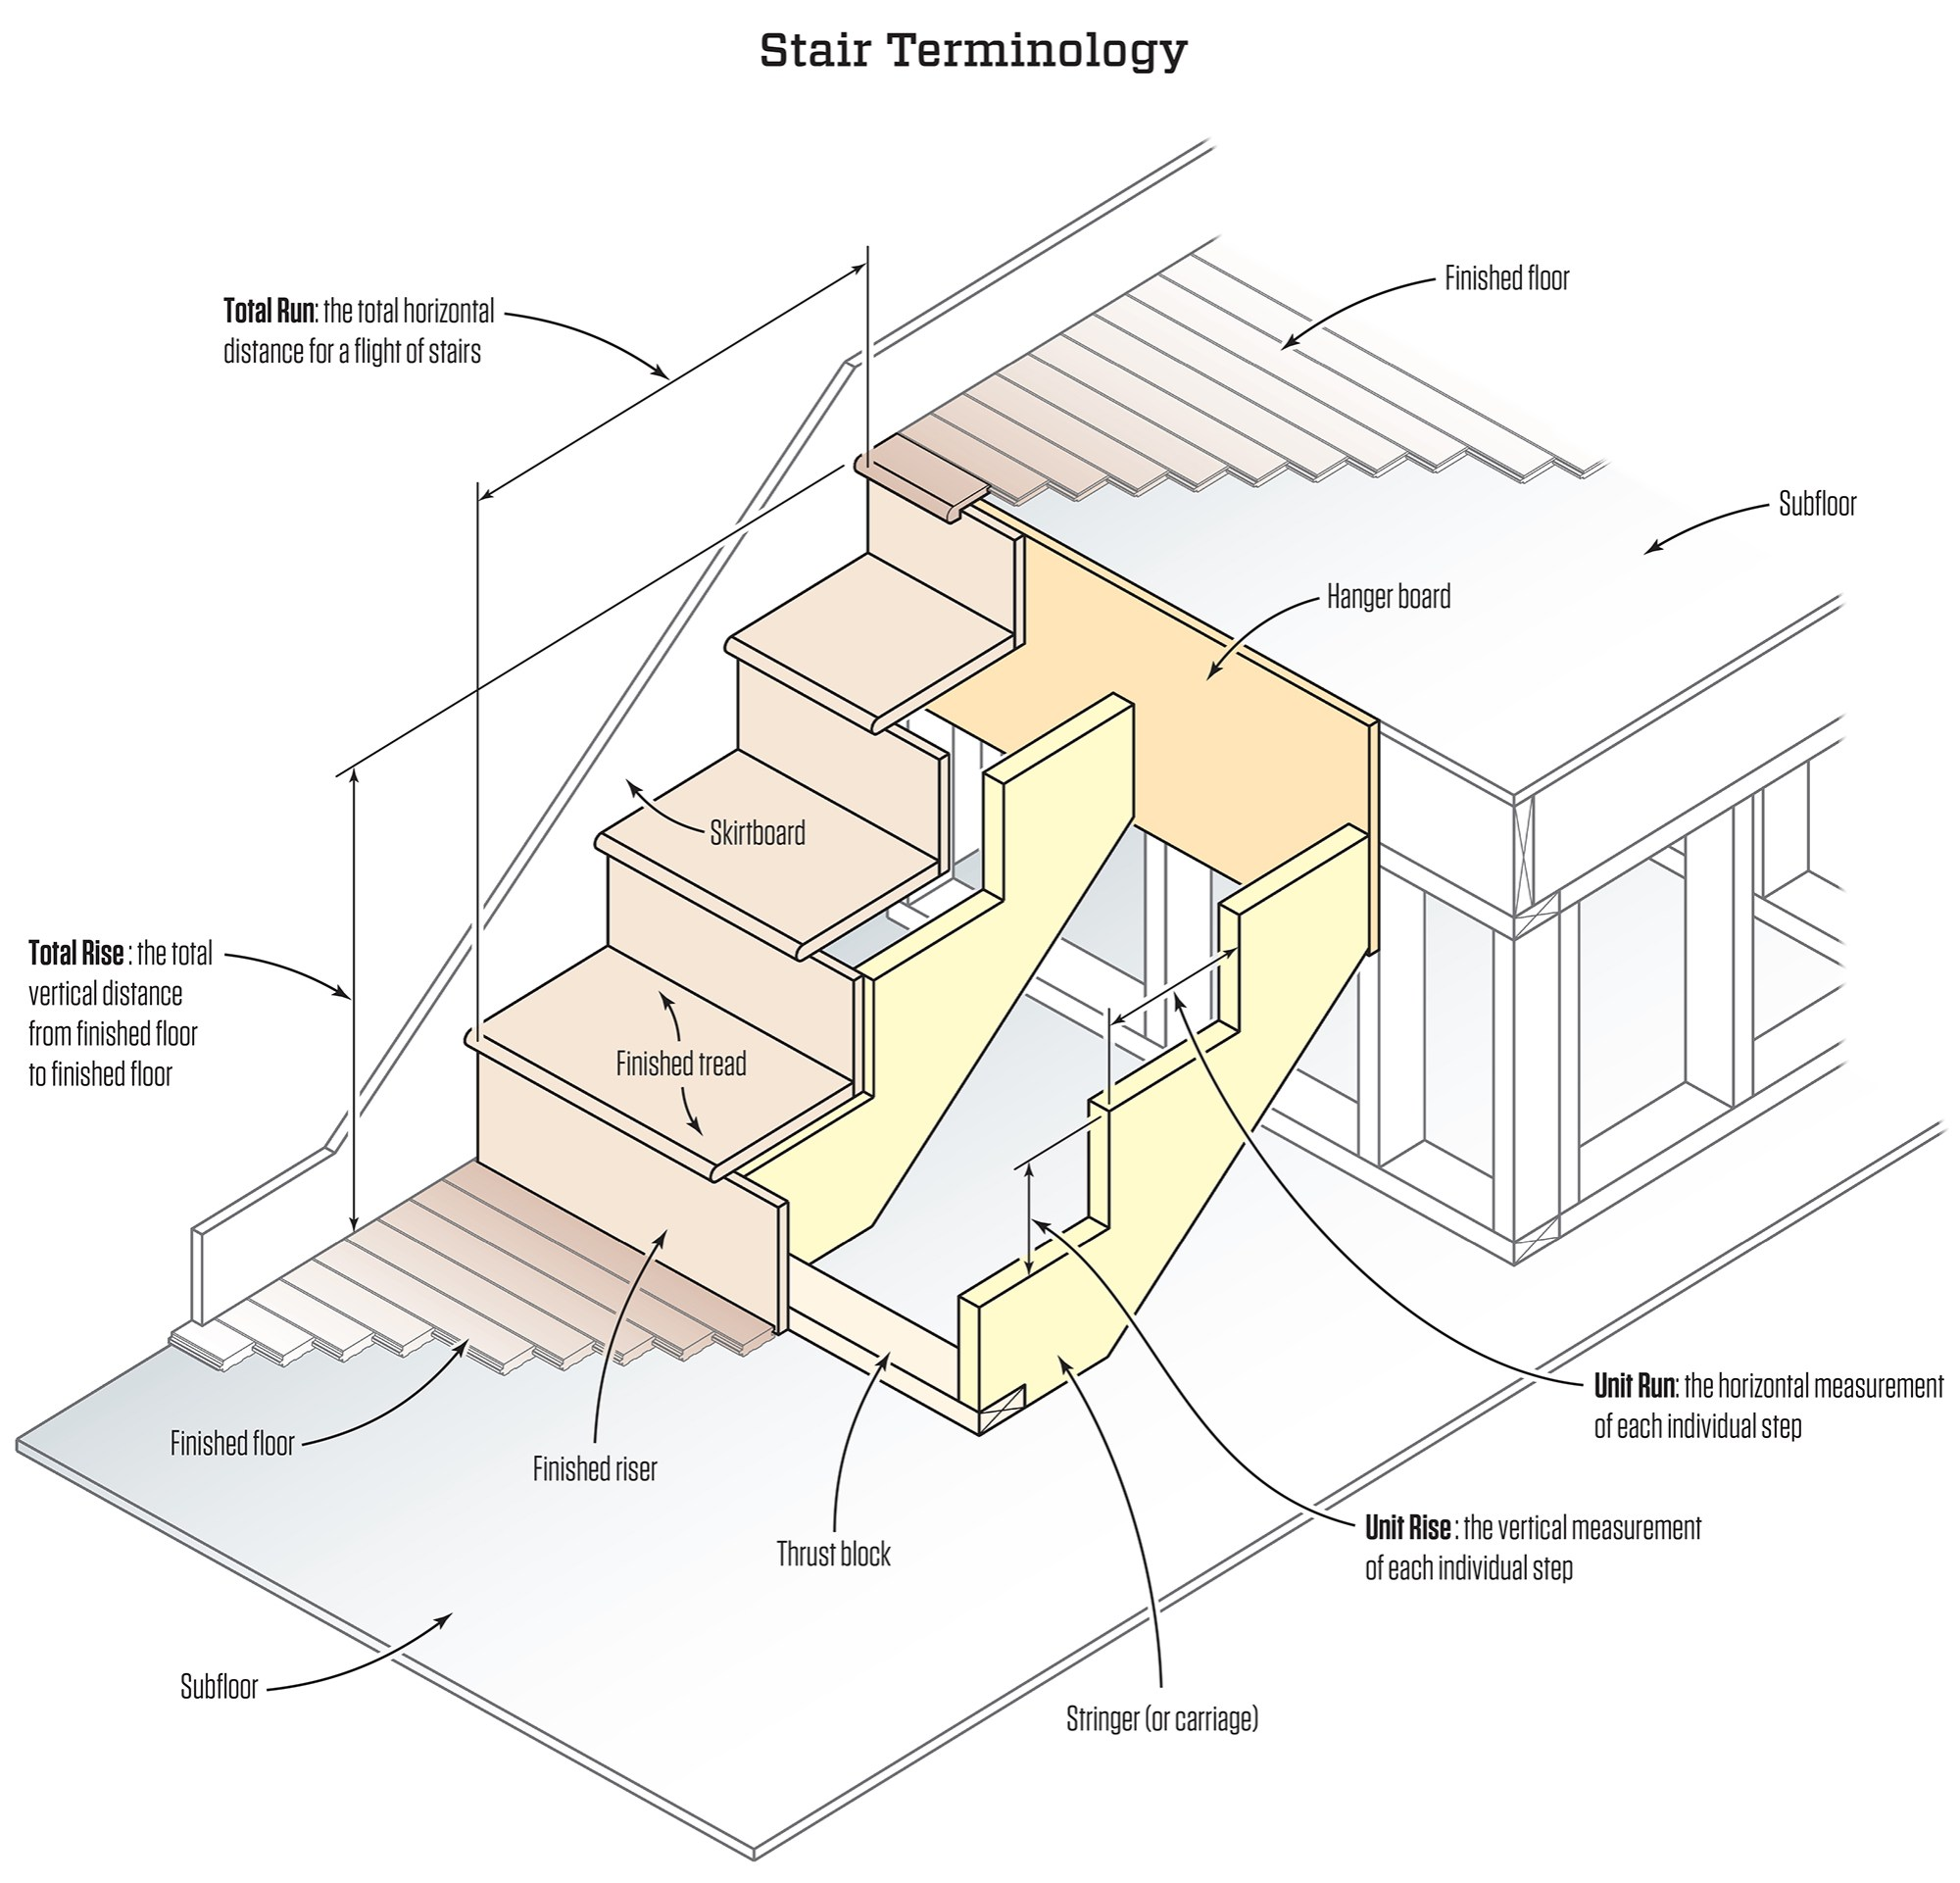 hight resolution of stair stringers calculation and layout professional deck builder framing staircases workforce